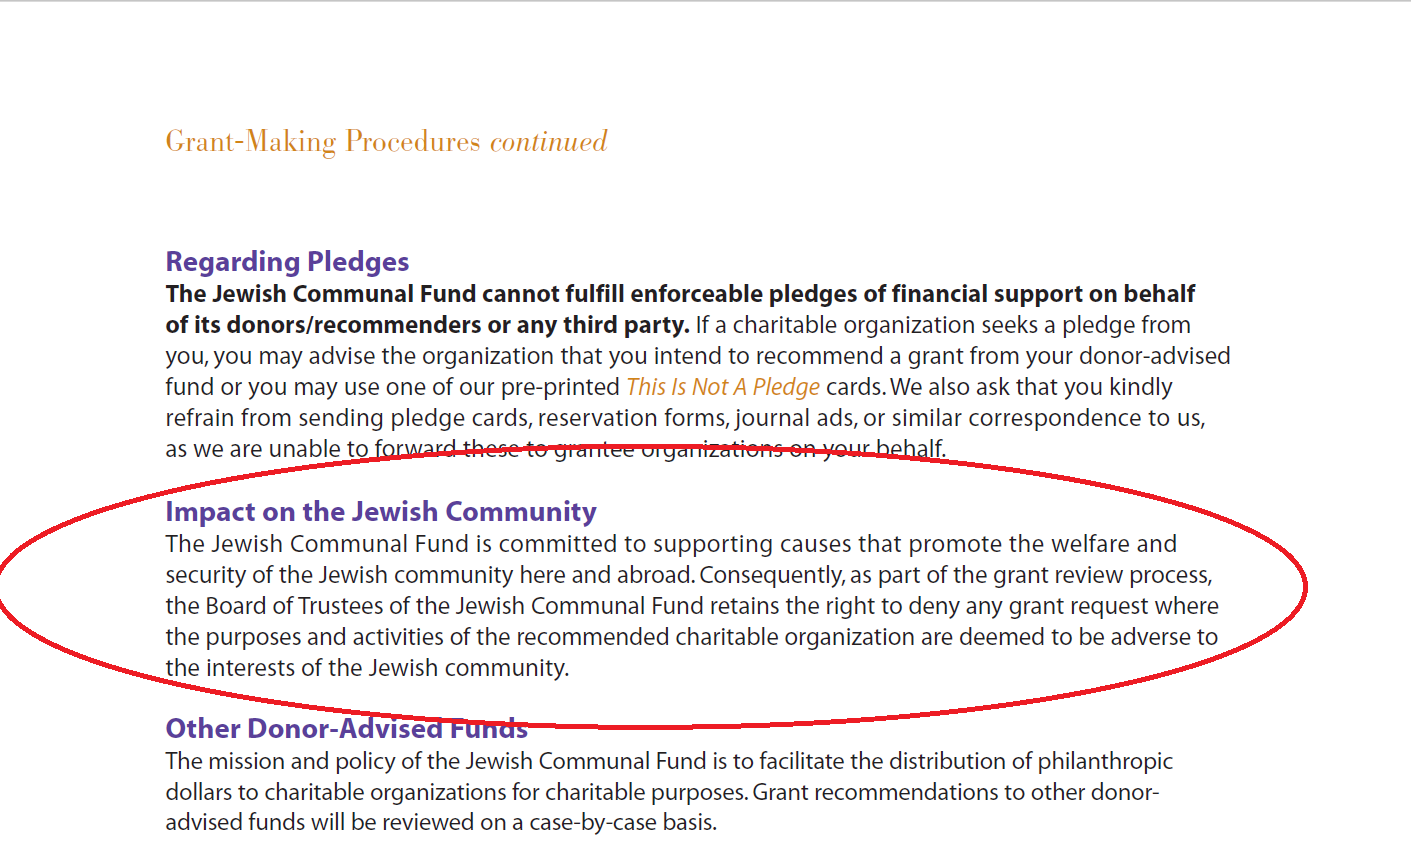 Grantmaking guidelines of UJA-Federation's Jewish Communal Fund.